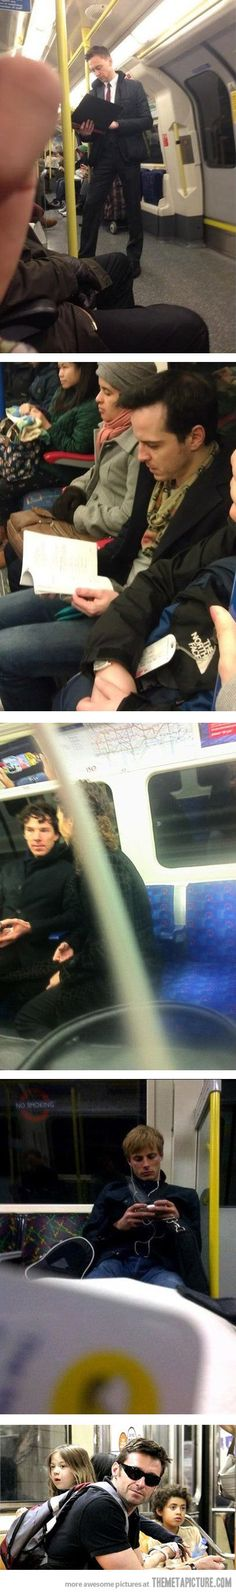 Holy TARDIS I would die! I have enough trouble not staring at random citizens that I find attractive.